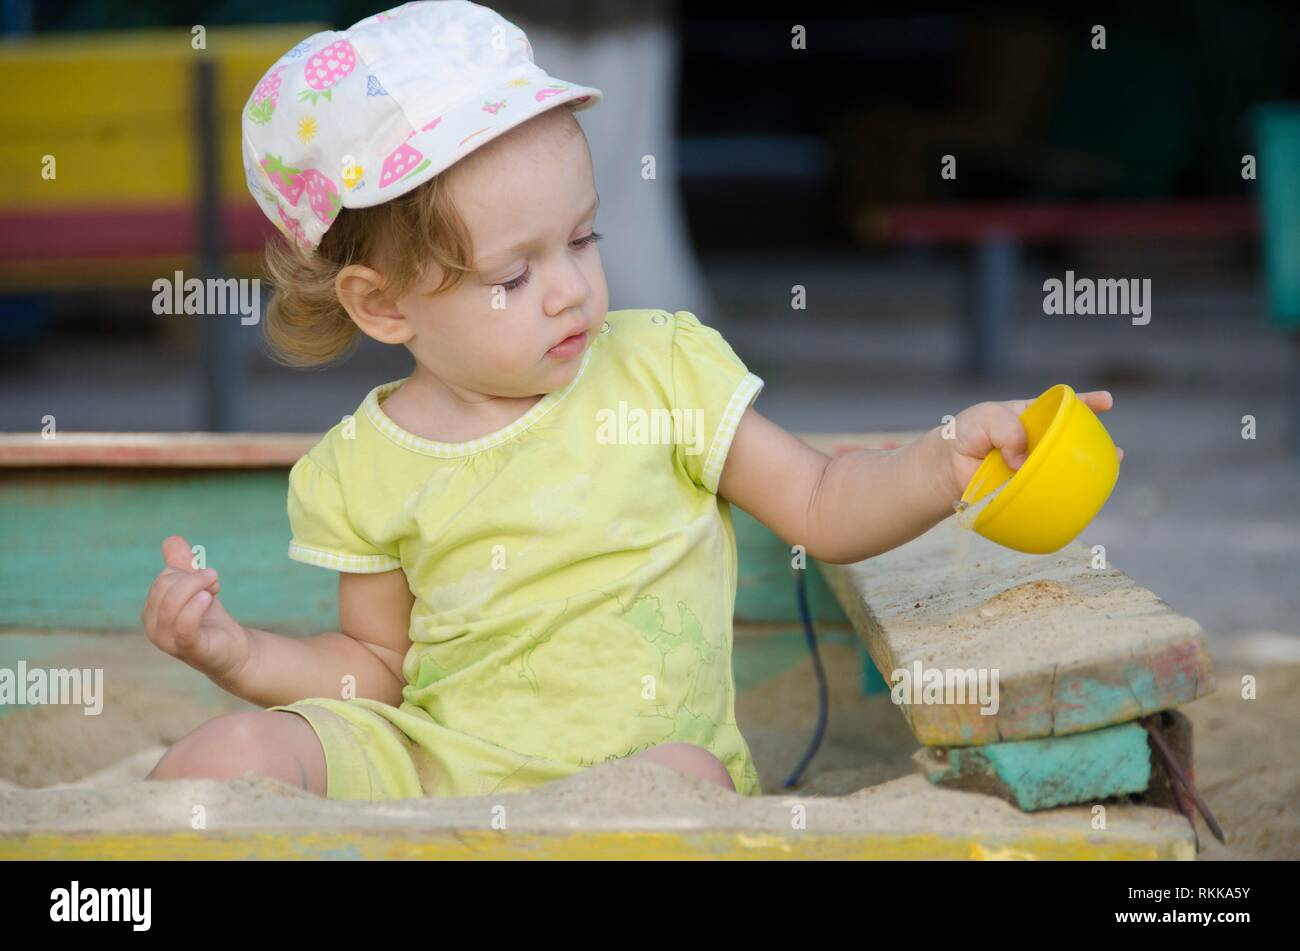 Little girl is playing in the old sandbox. - Stock Image